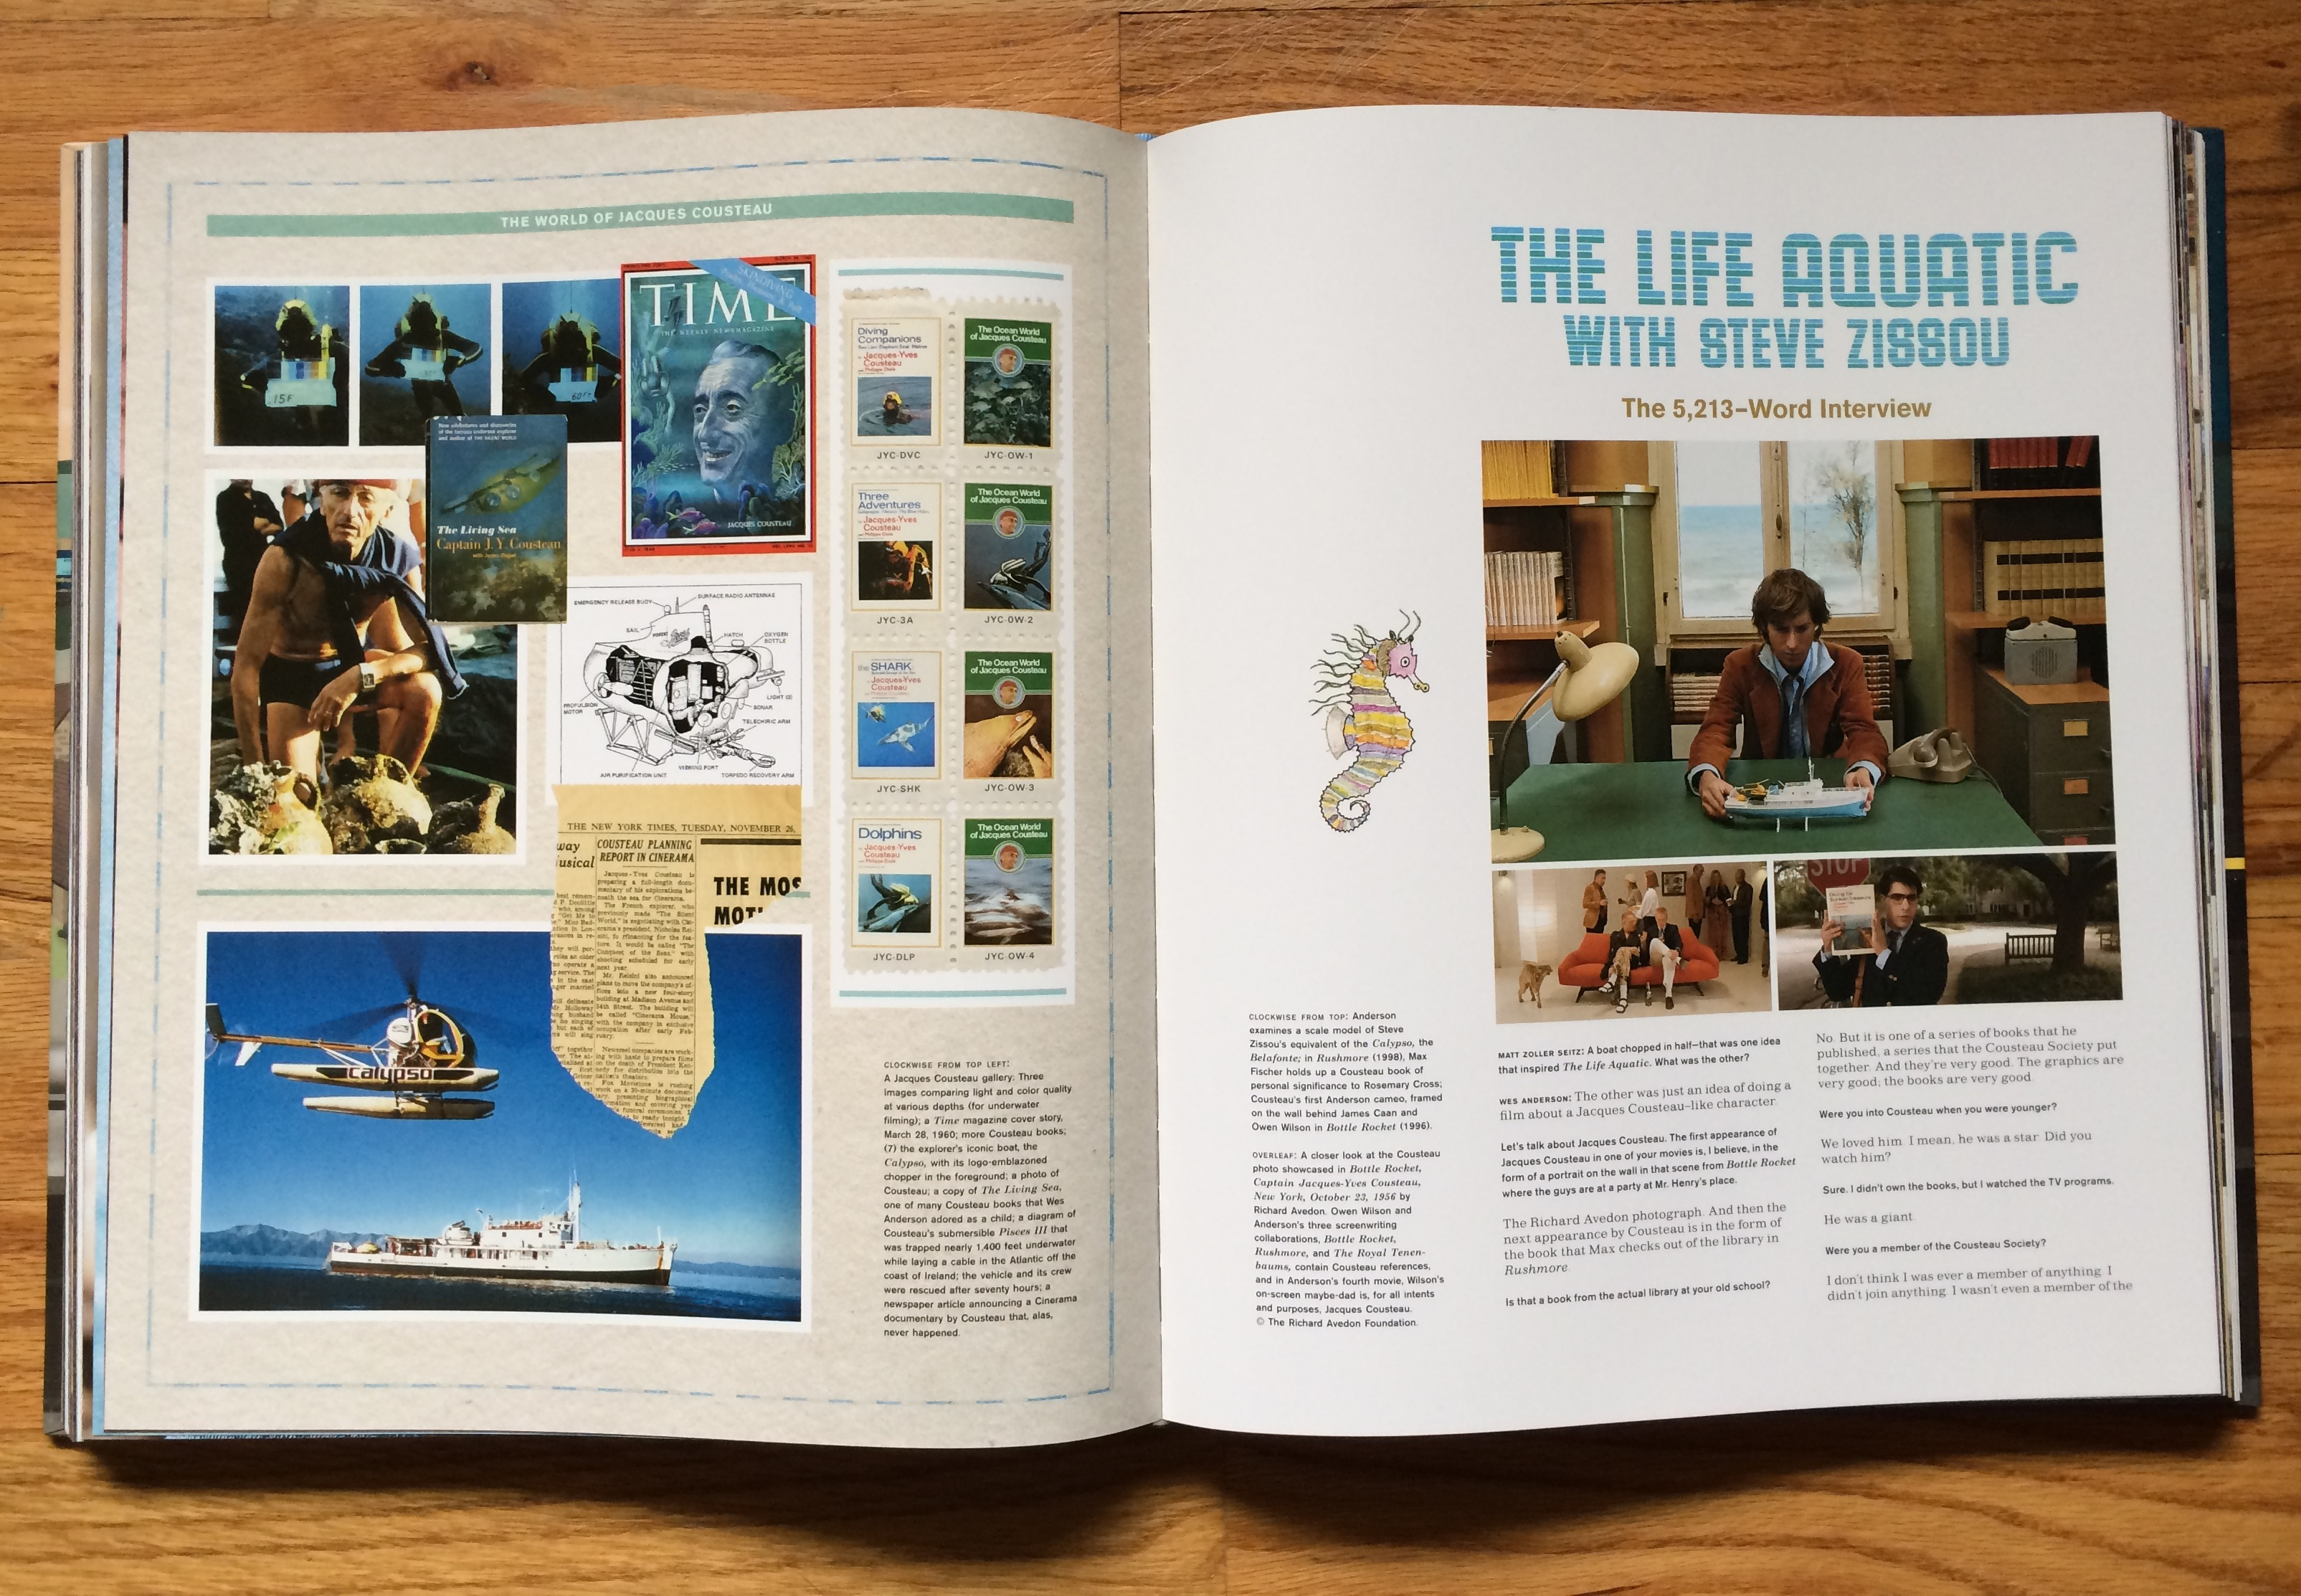 Wes Anderson Coffee Table Book.Book Review The Wes Anderson Collection Movie Hodgepodge